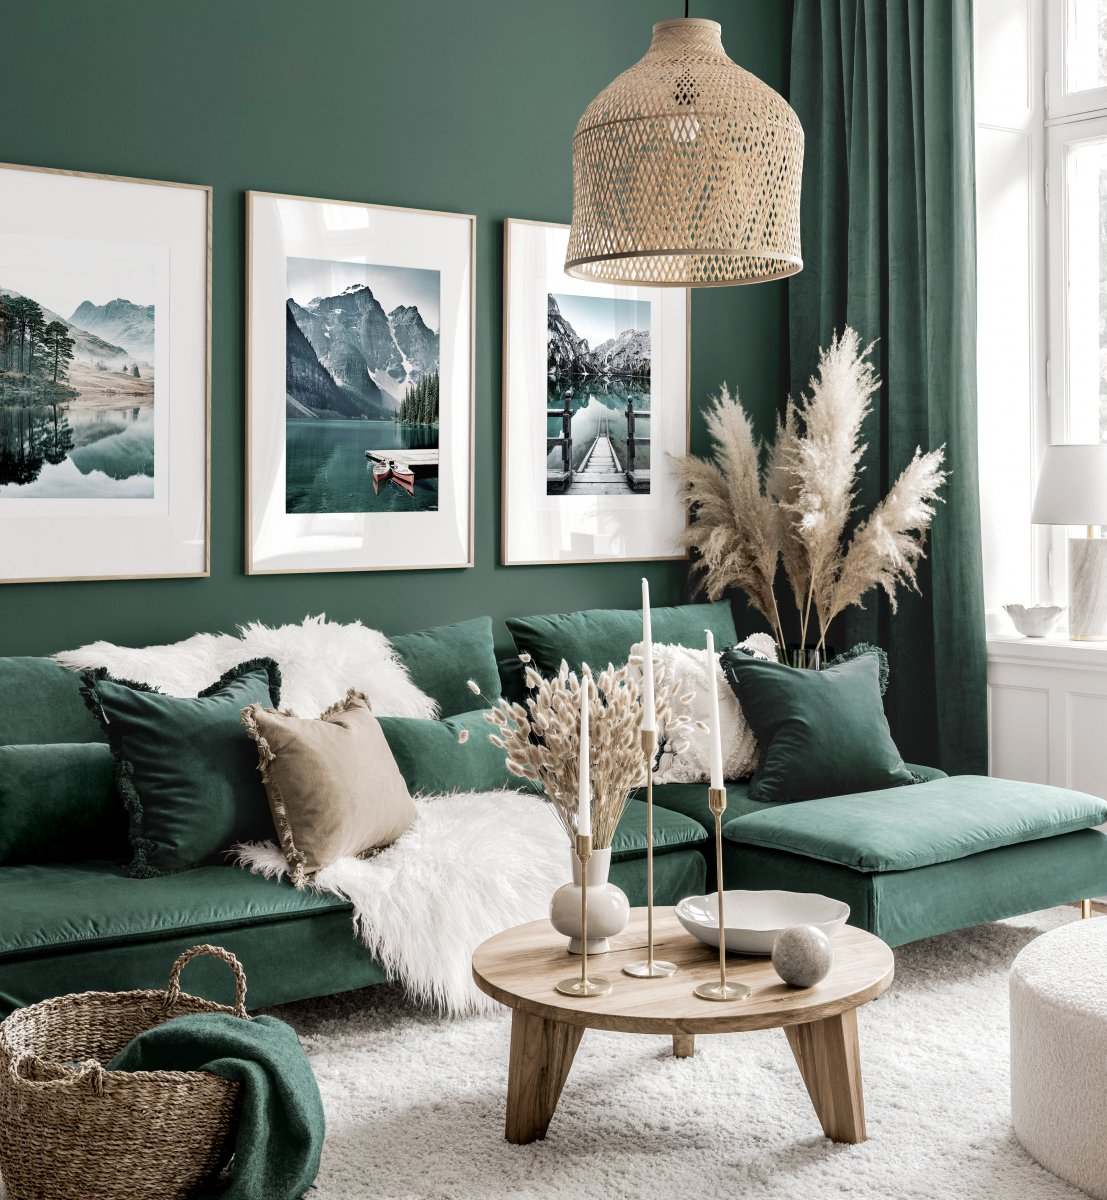 Stunning Gallery Wall Art Green Living Room Nature Posters Oak Frames Gallery Wall Inspiration Posterstore Co Uk